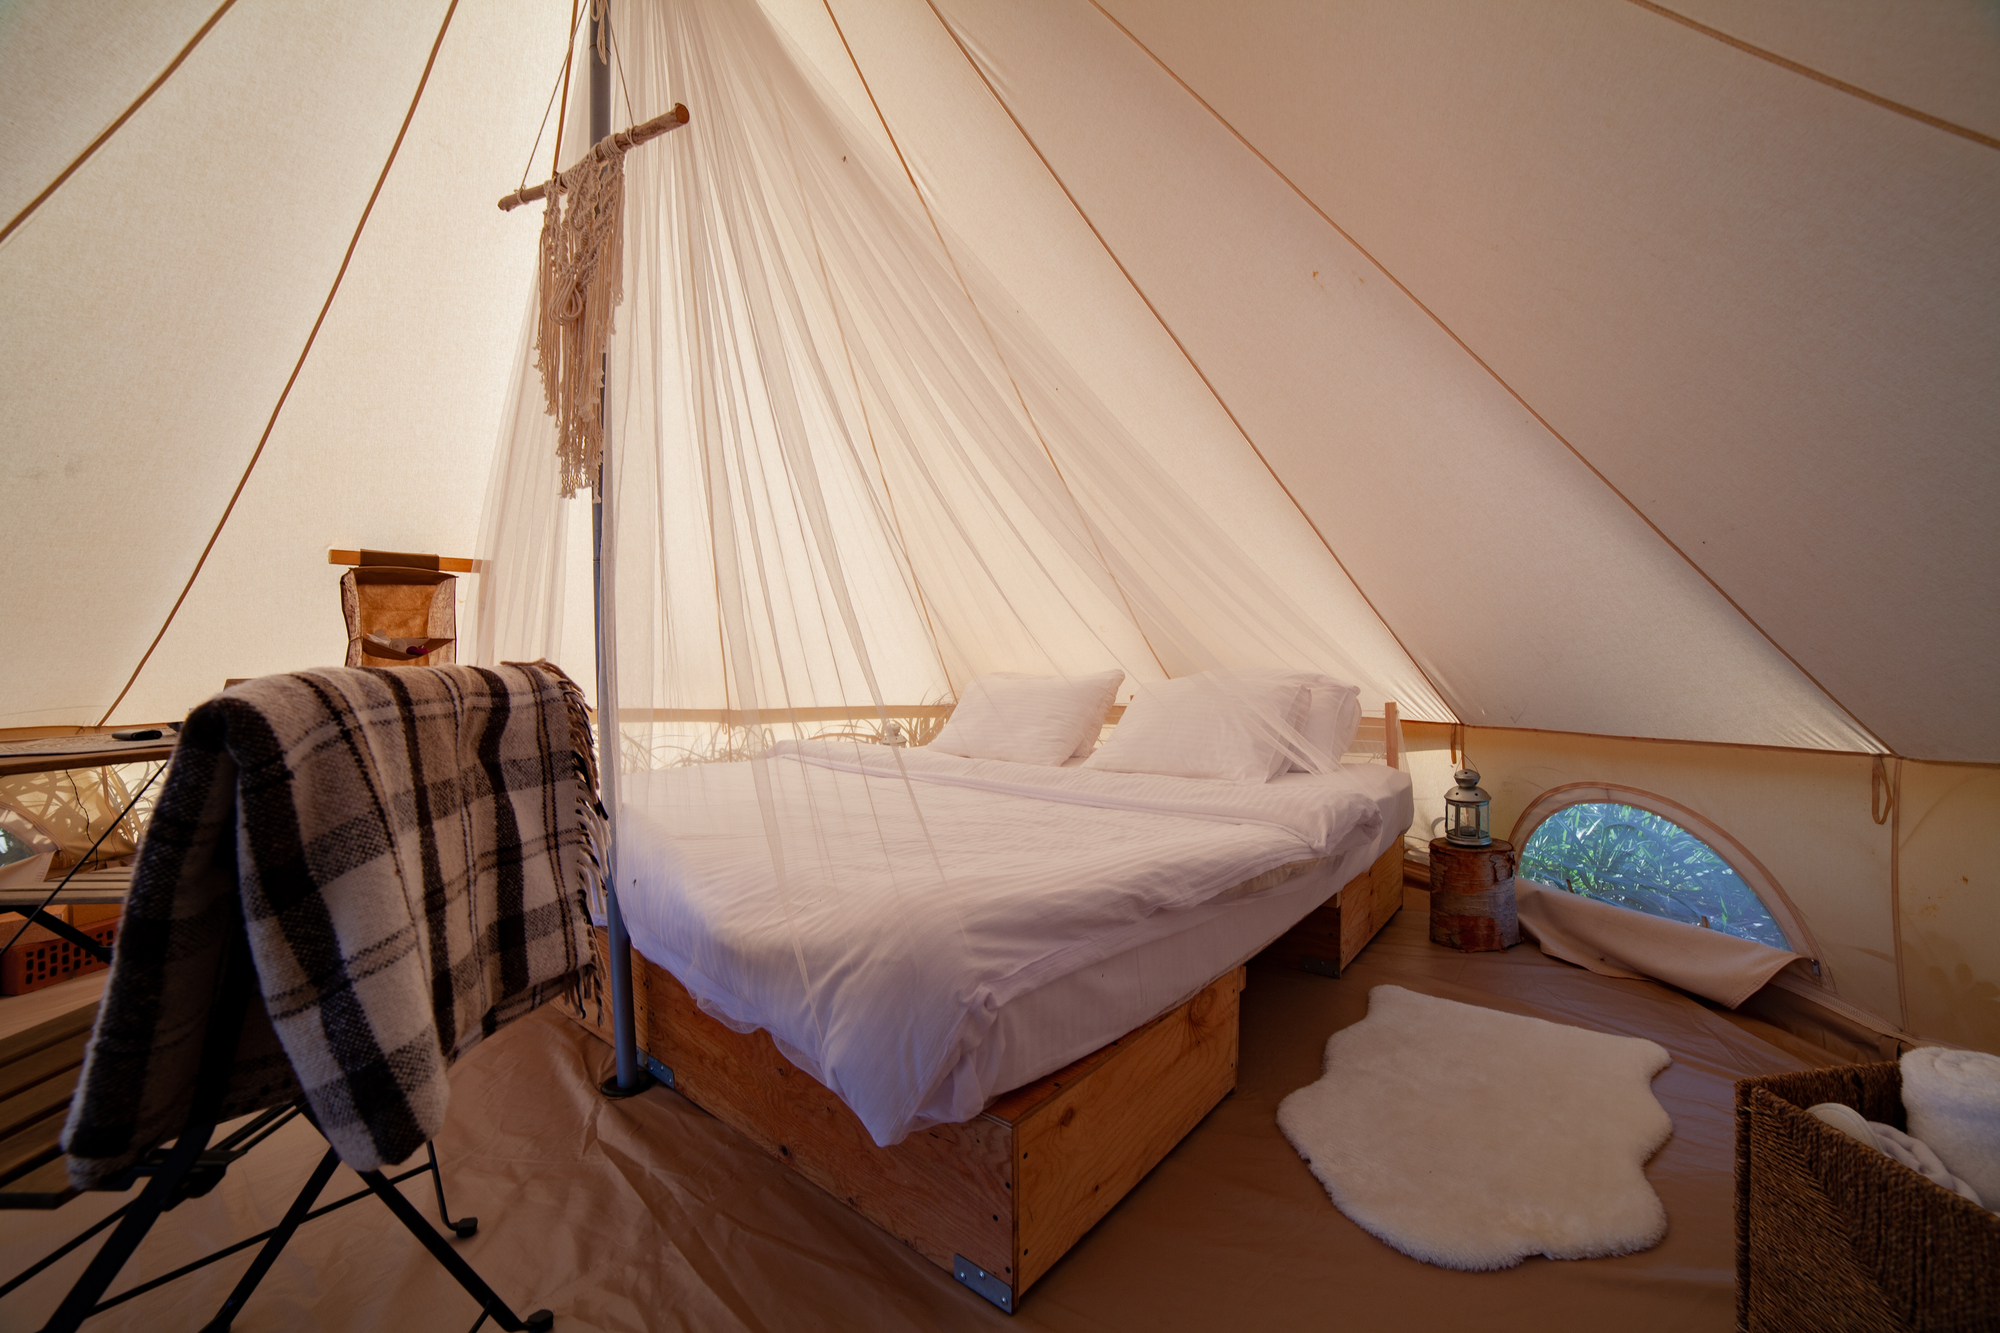 Glamping: Not Just for the Bourgeoisie